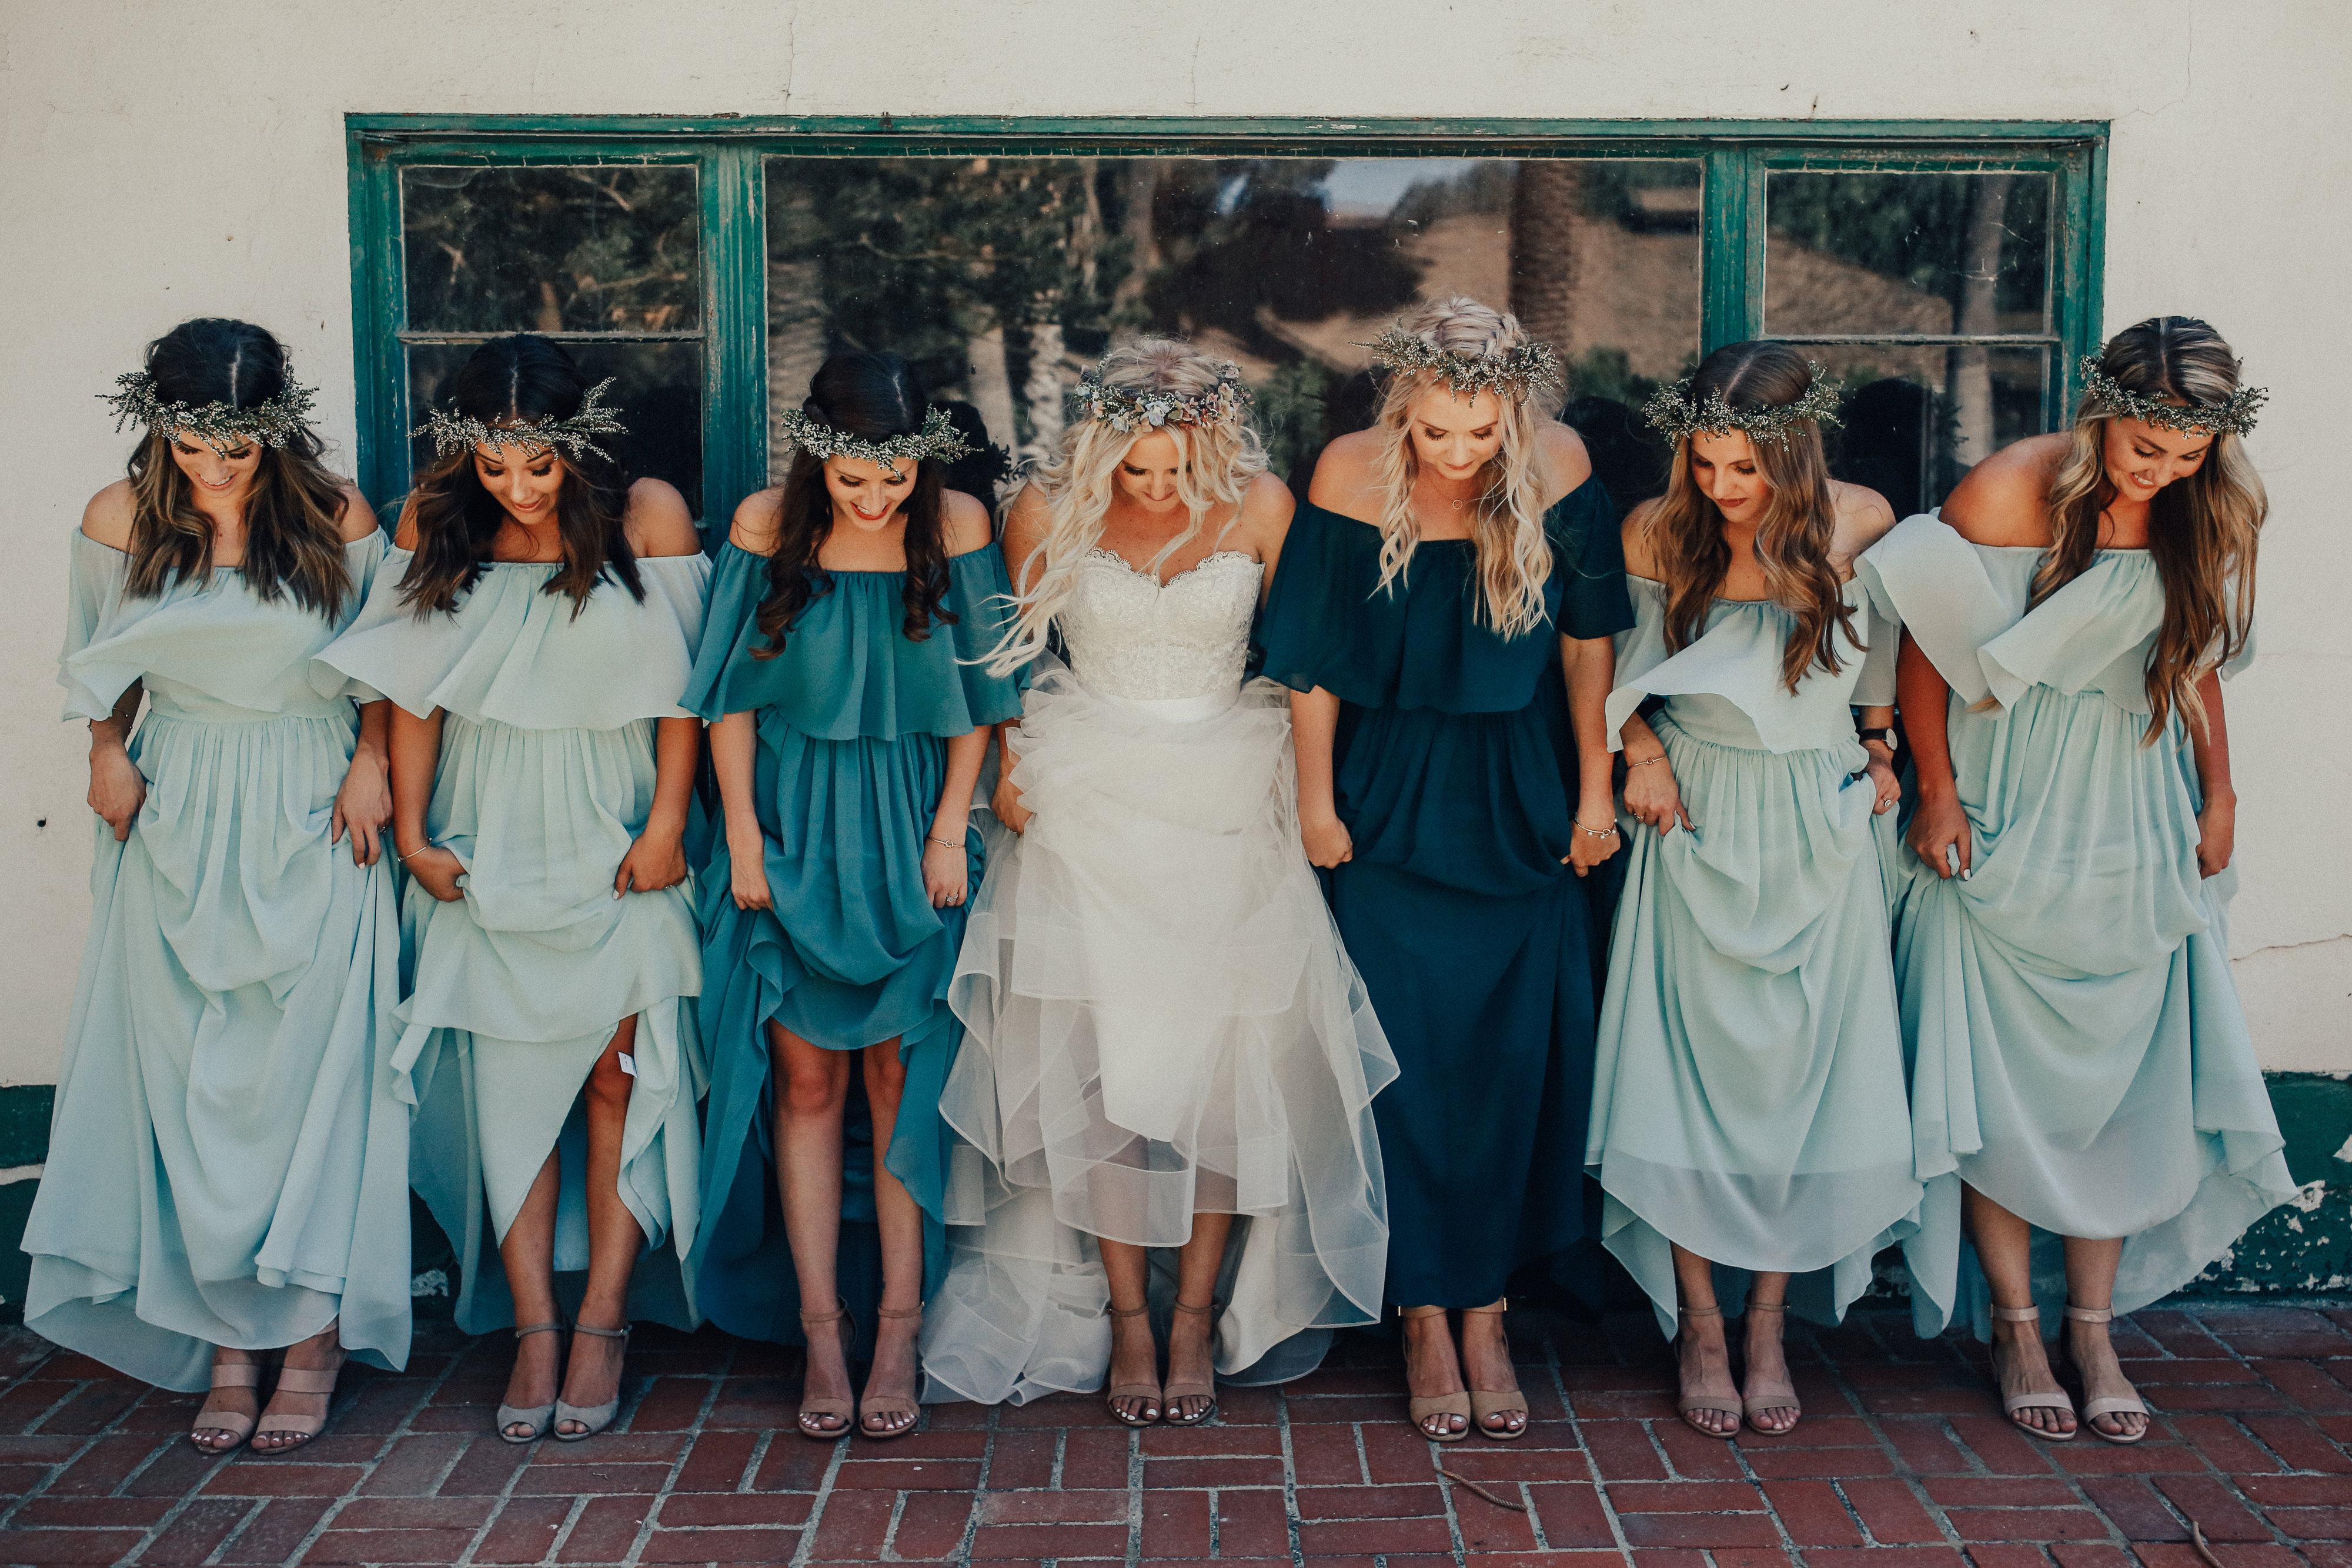 Bride and bridesmaids all in chiffon dresses hold dresses up and look at shoes for pretty boho picture